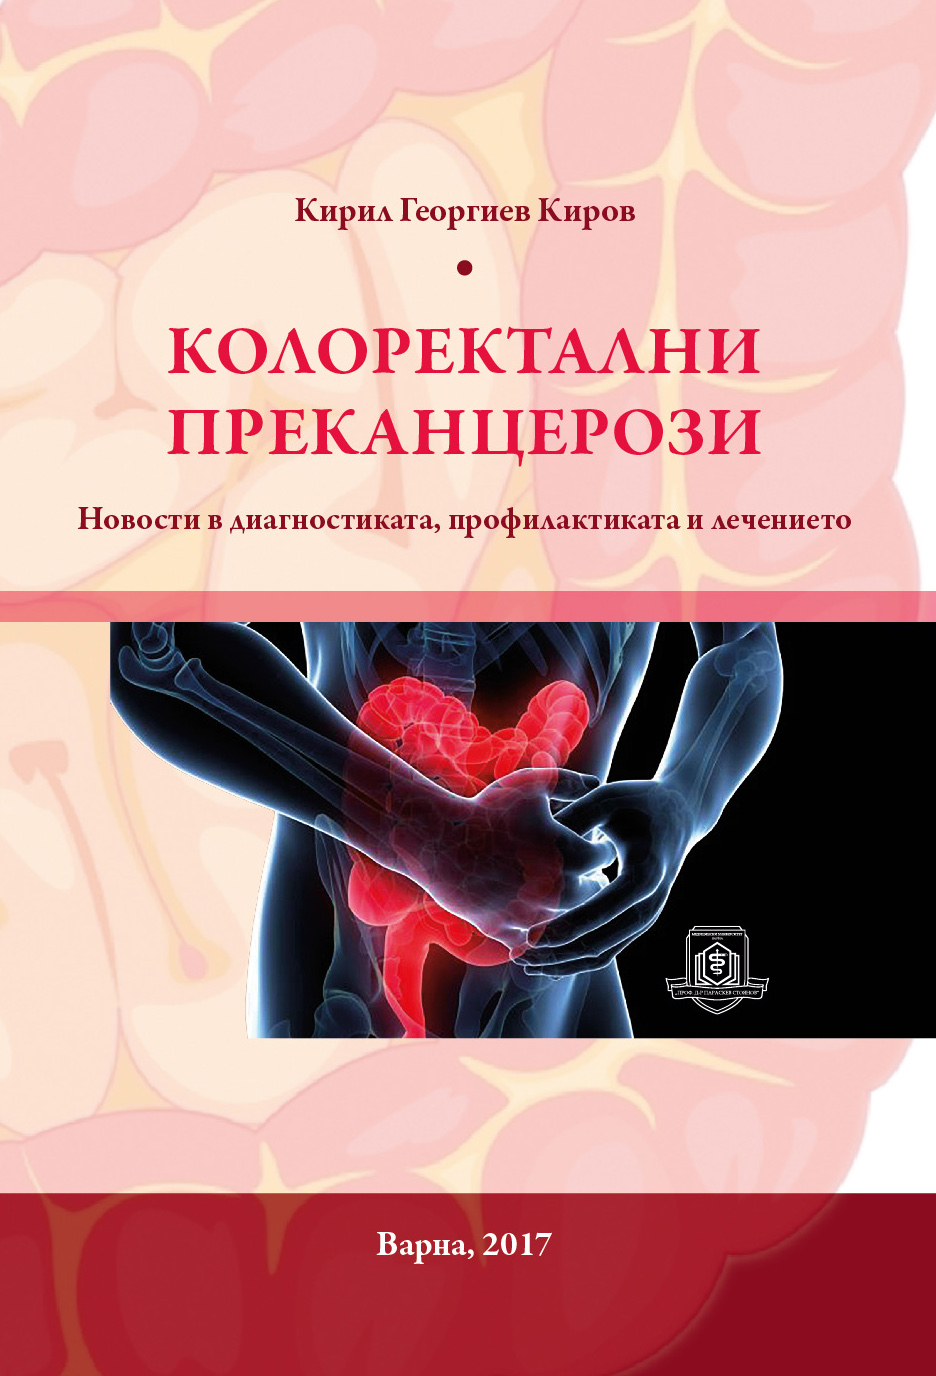 The Monograph Colorectal Precanceroses. Advances in Diagnosis, Prevention and Treatment Has Been Published in Bulgarian